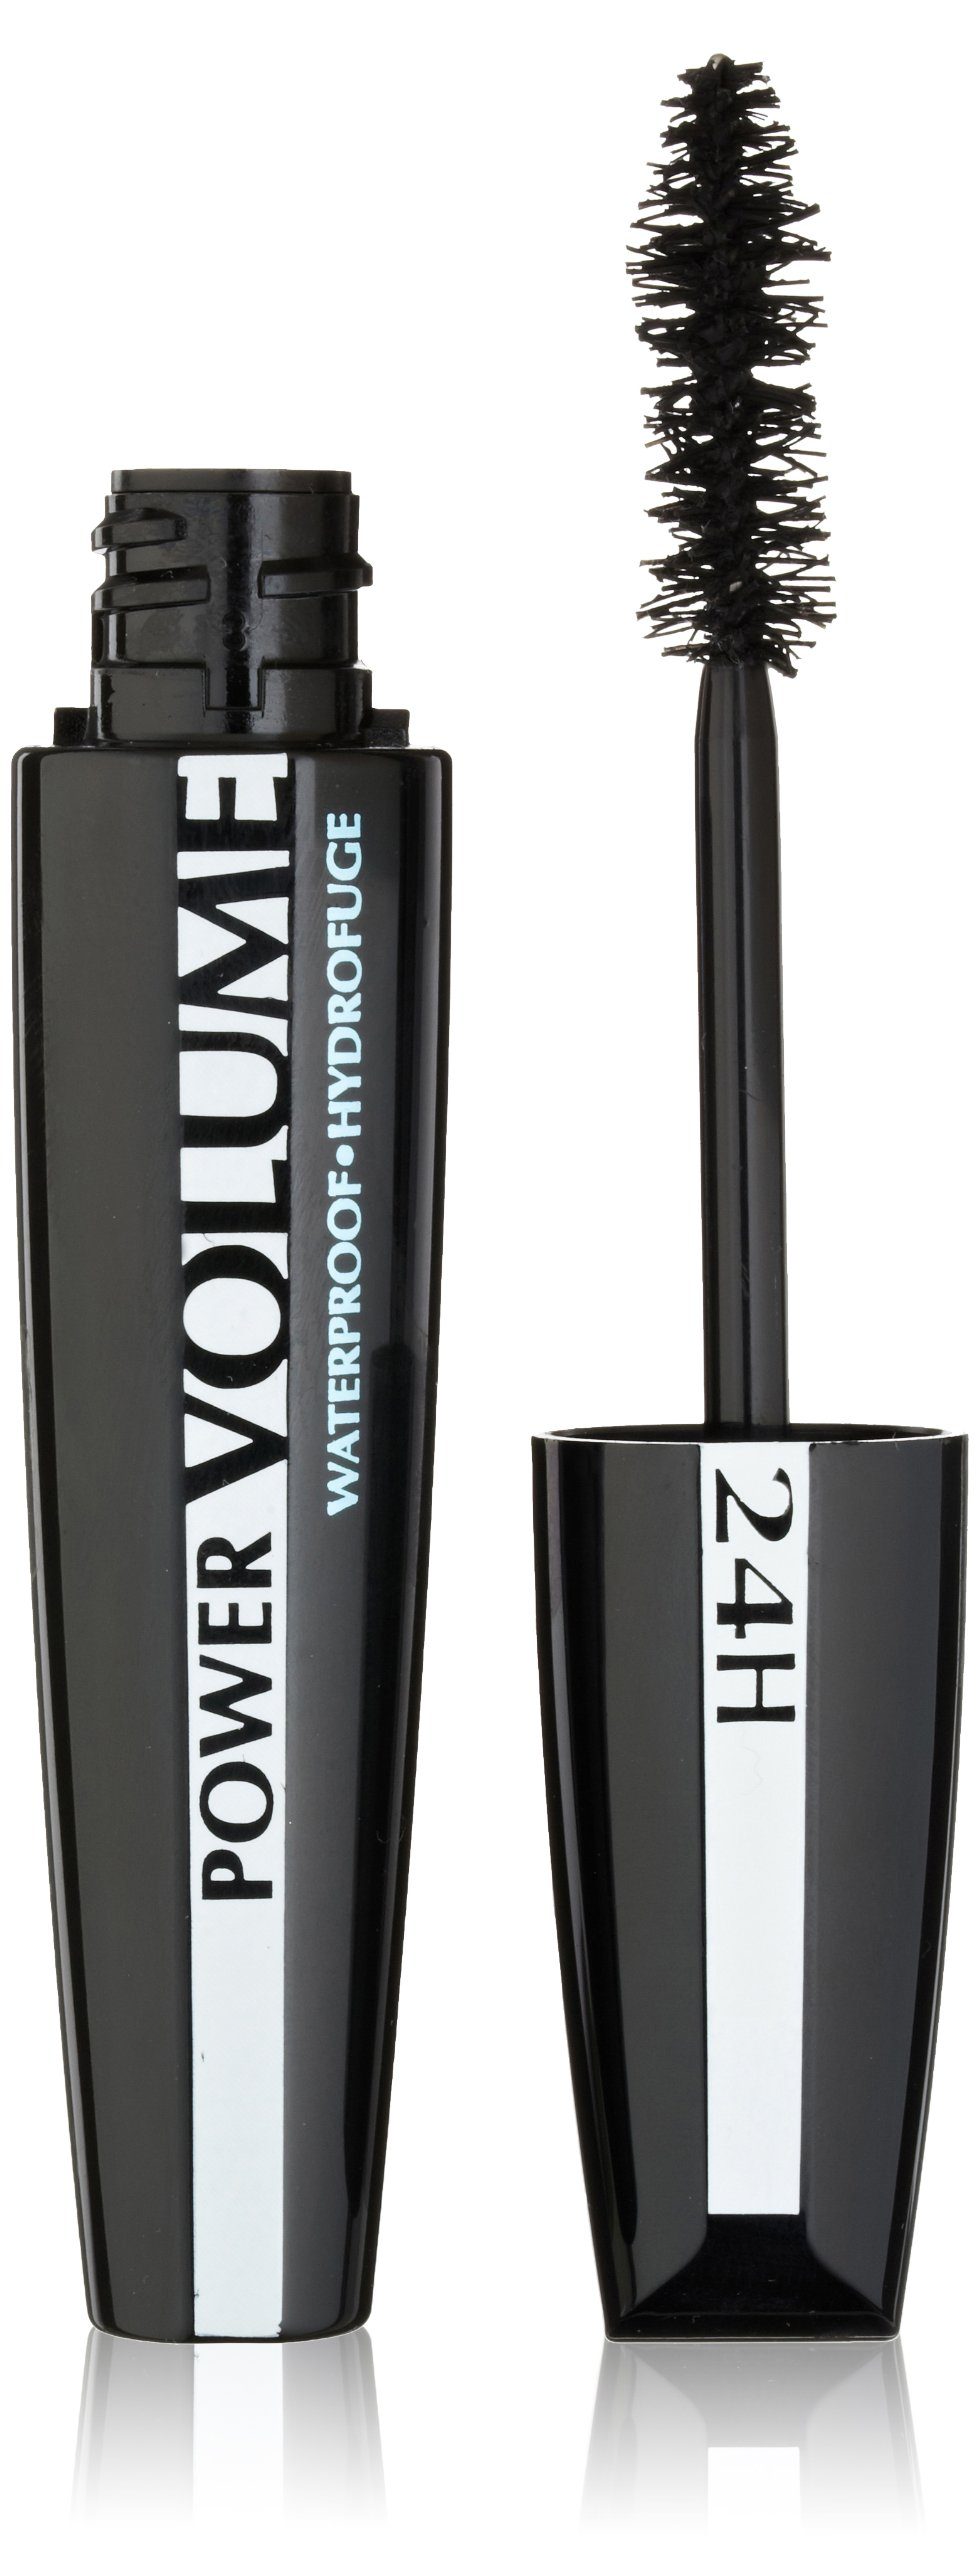 LOreal Paris Voluminous Power Volume 24H Waterproof Mascara, 696 Blackest Black, 0.33